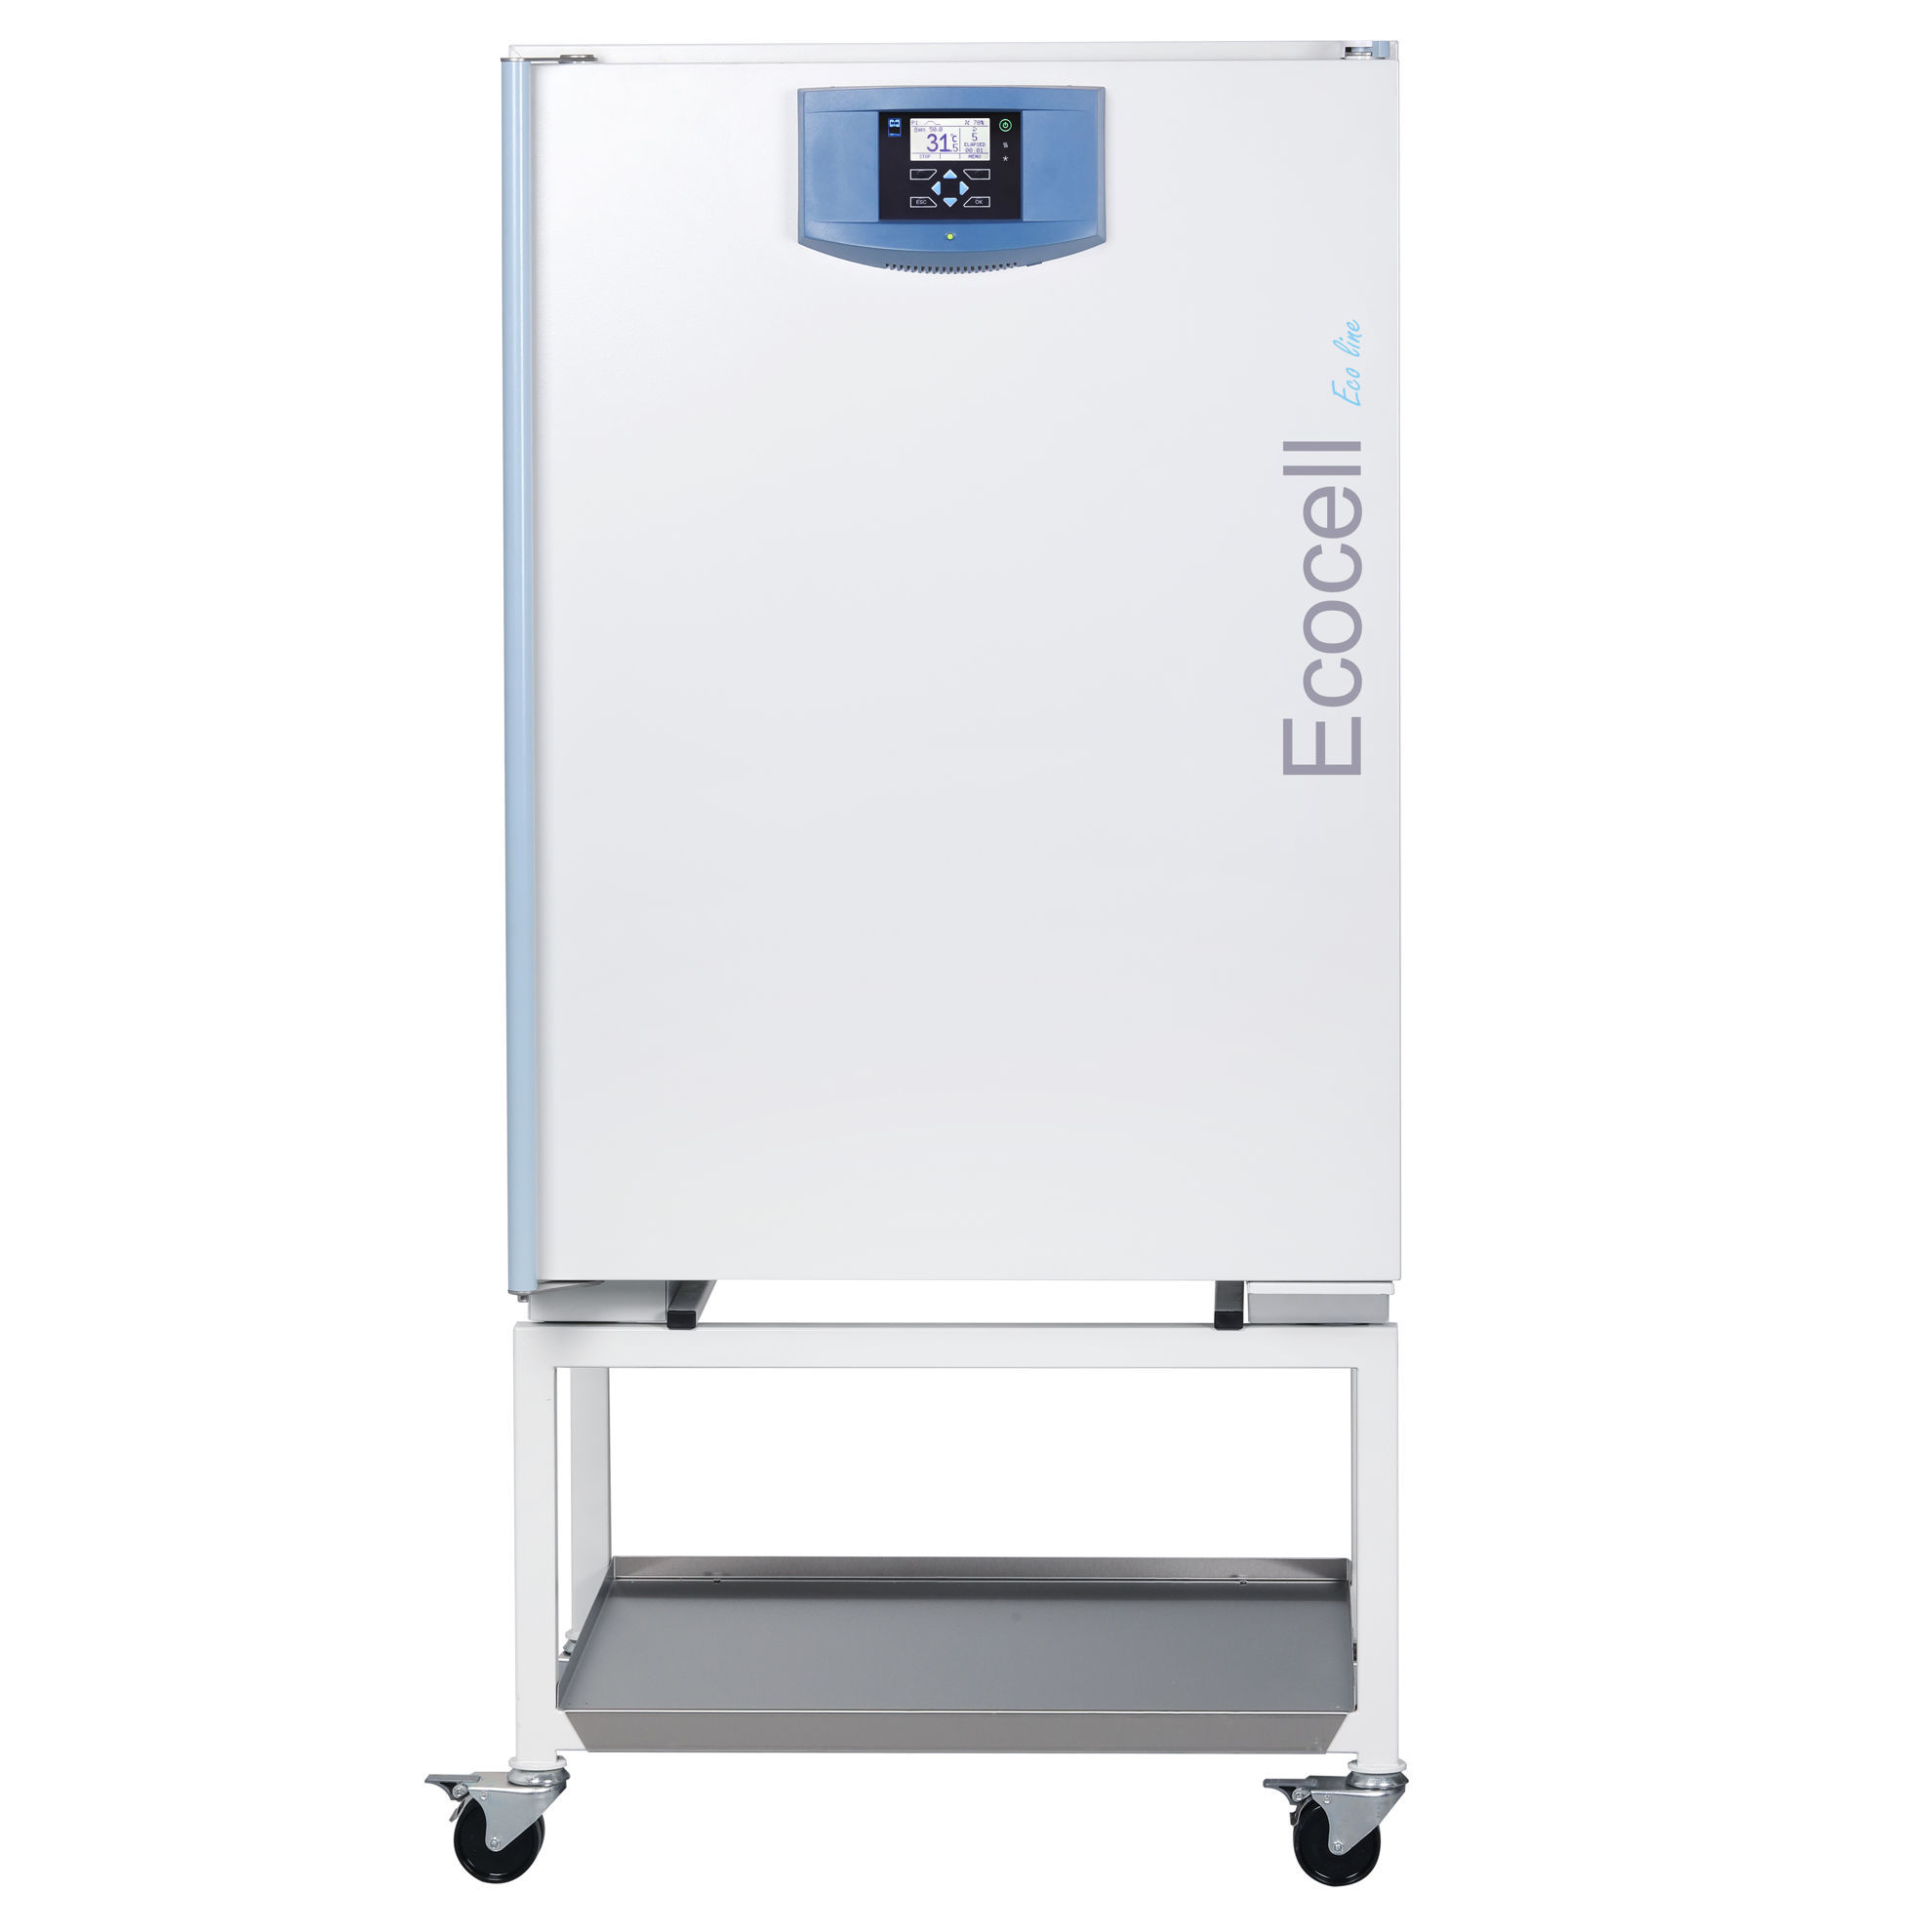 Picture of BMT Ecocell ECO Gravity Convection Ovens - MC000203